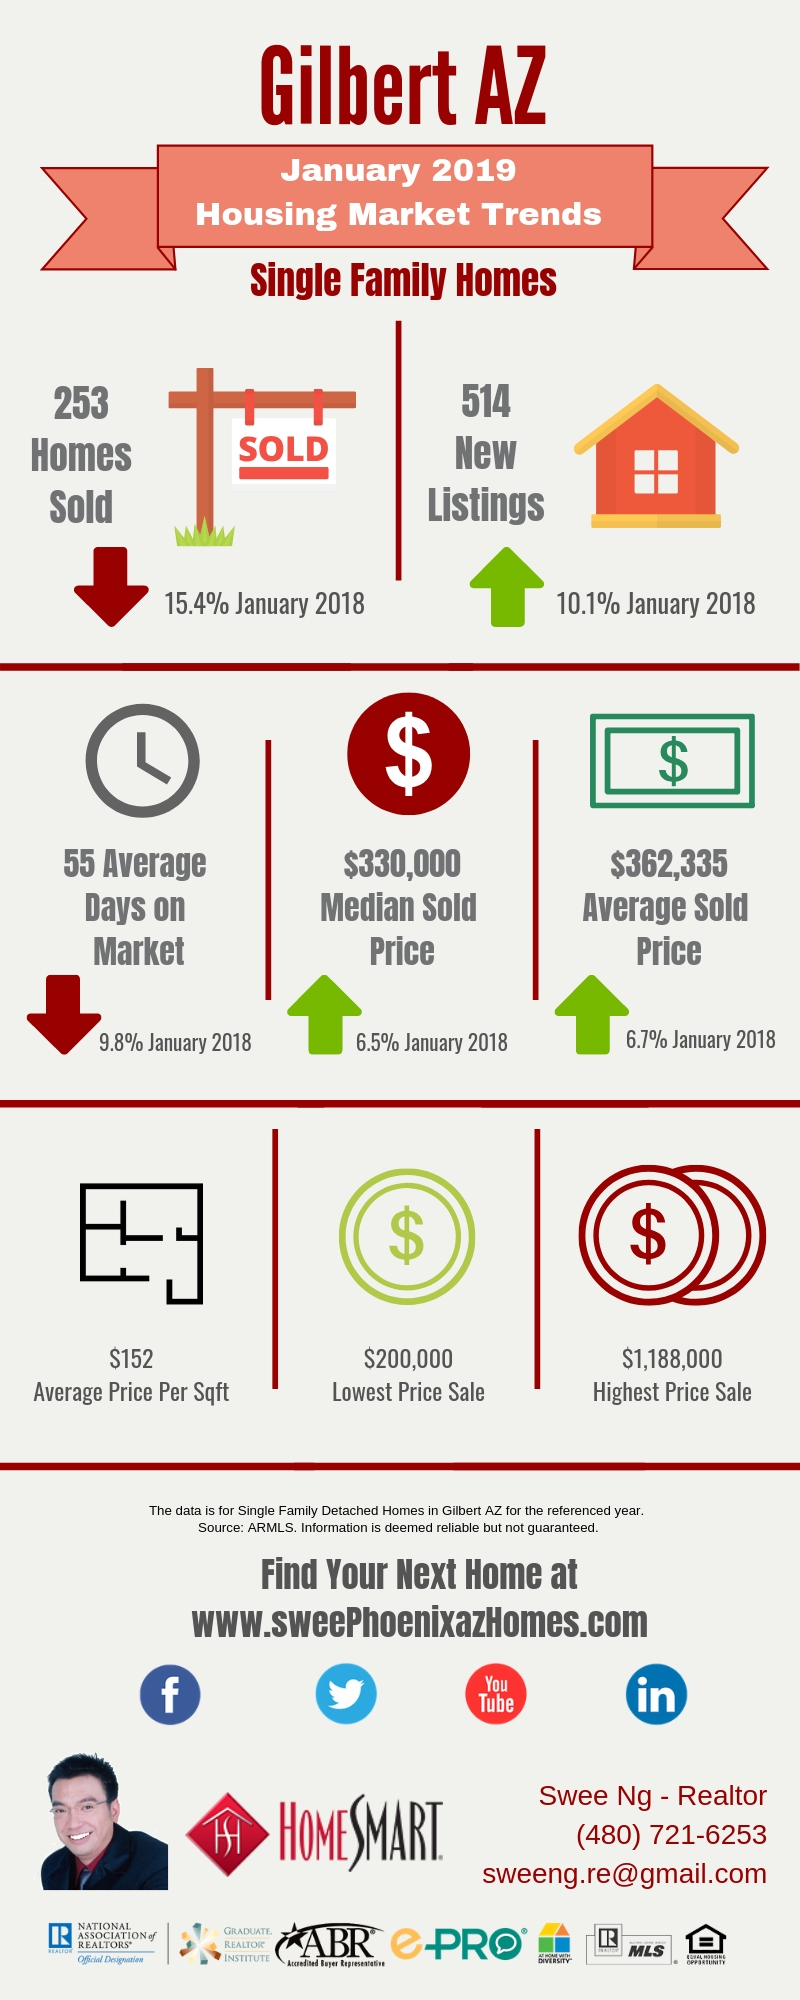 Gilbert AZ Housing Market Trends Report January 2019 by Swee Ng, Real Estate and House Value